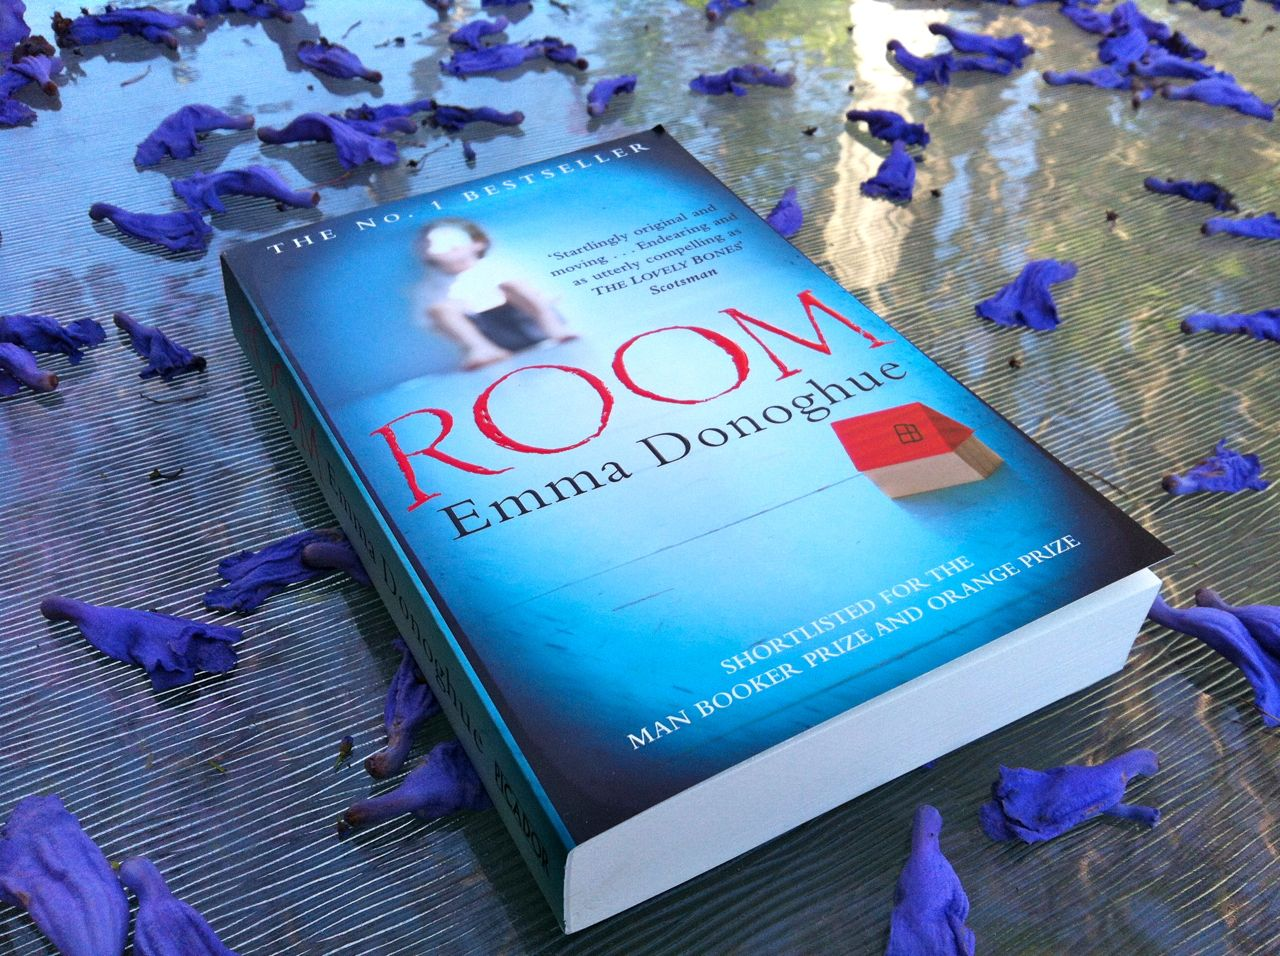 Room by Emma Donoghue and the trauma culture